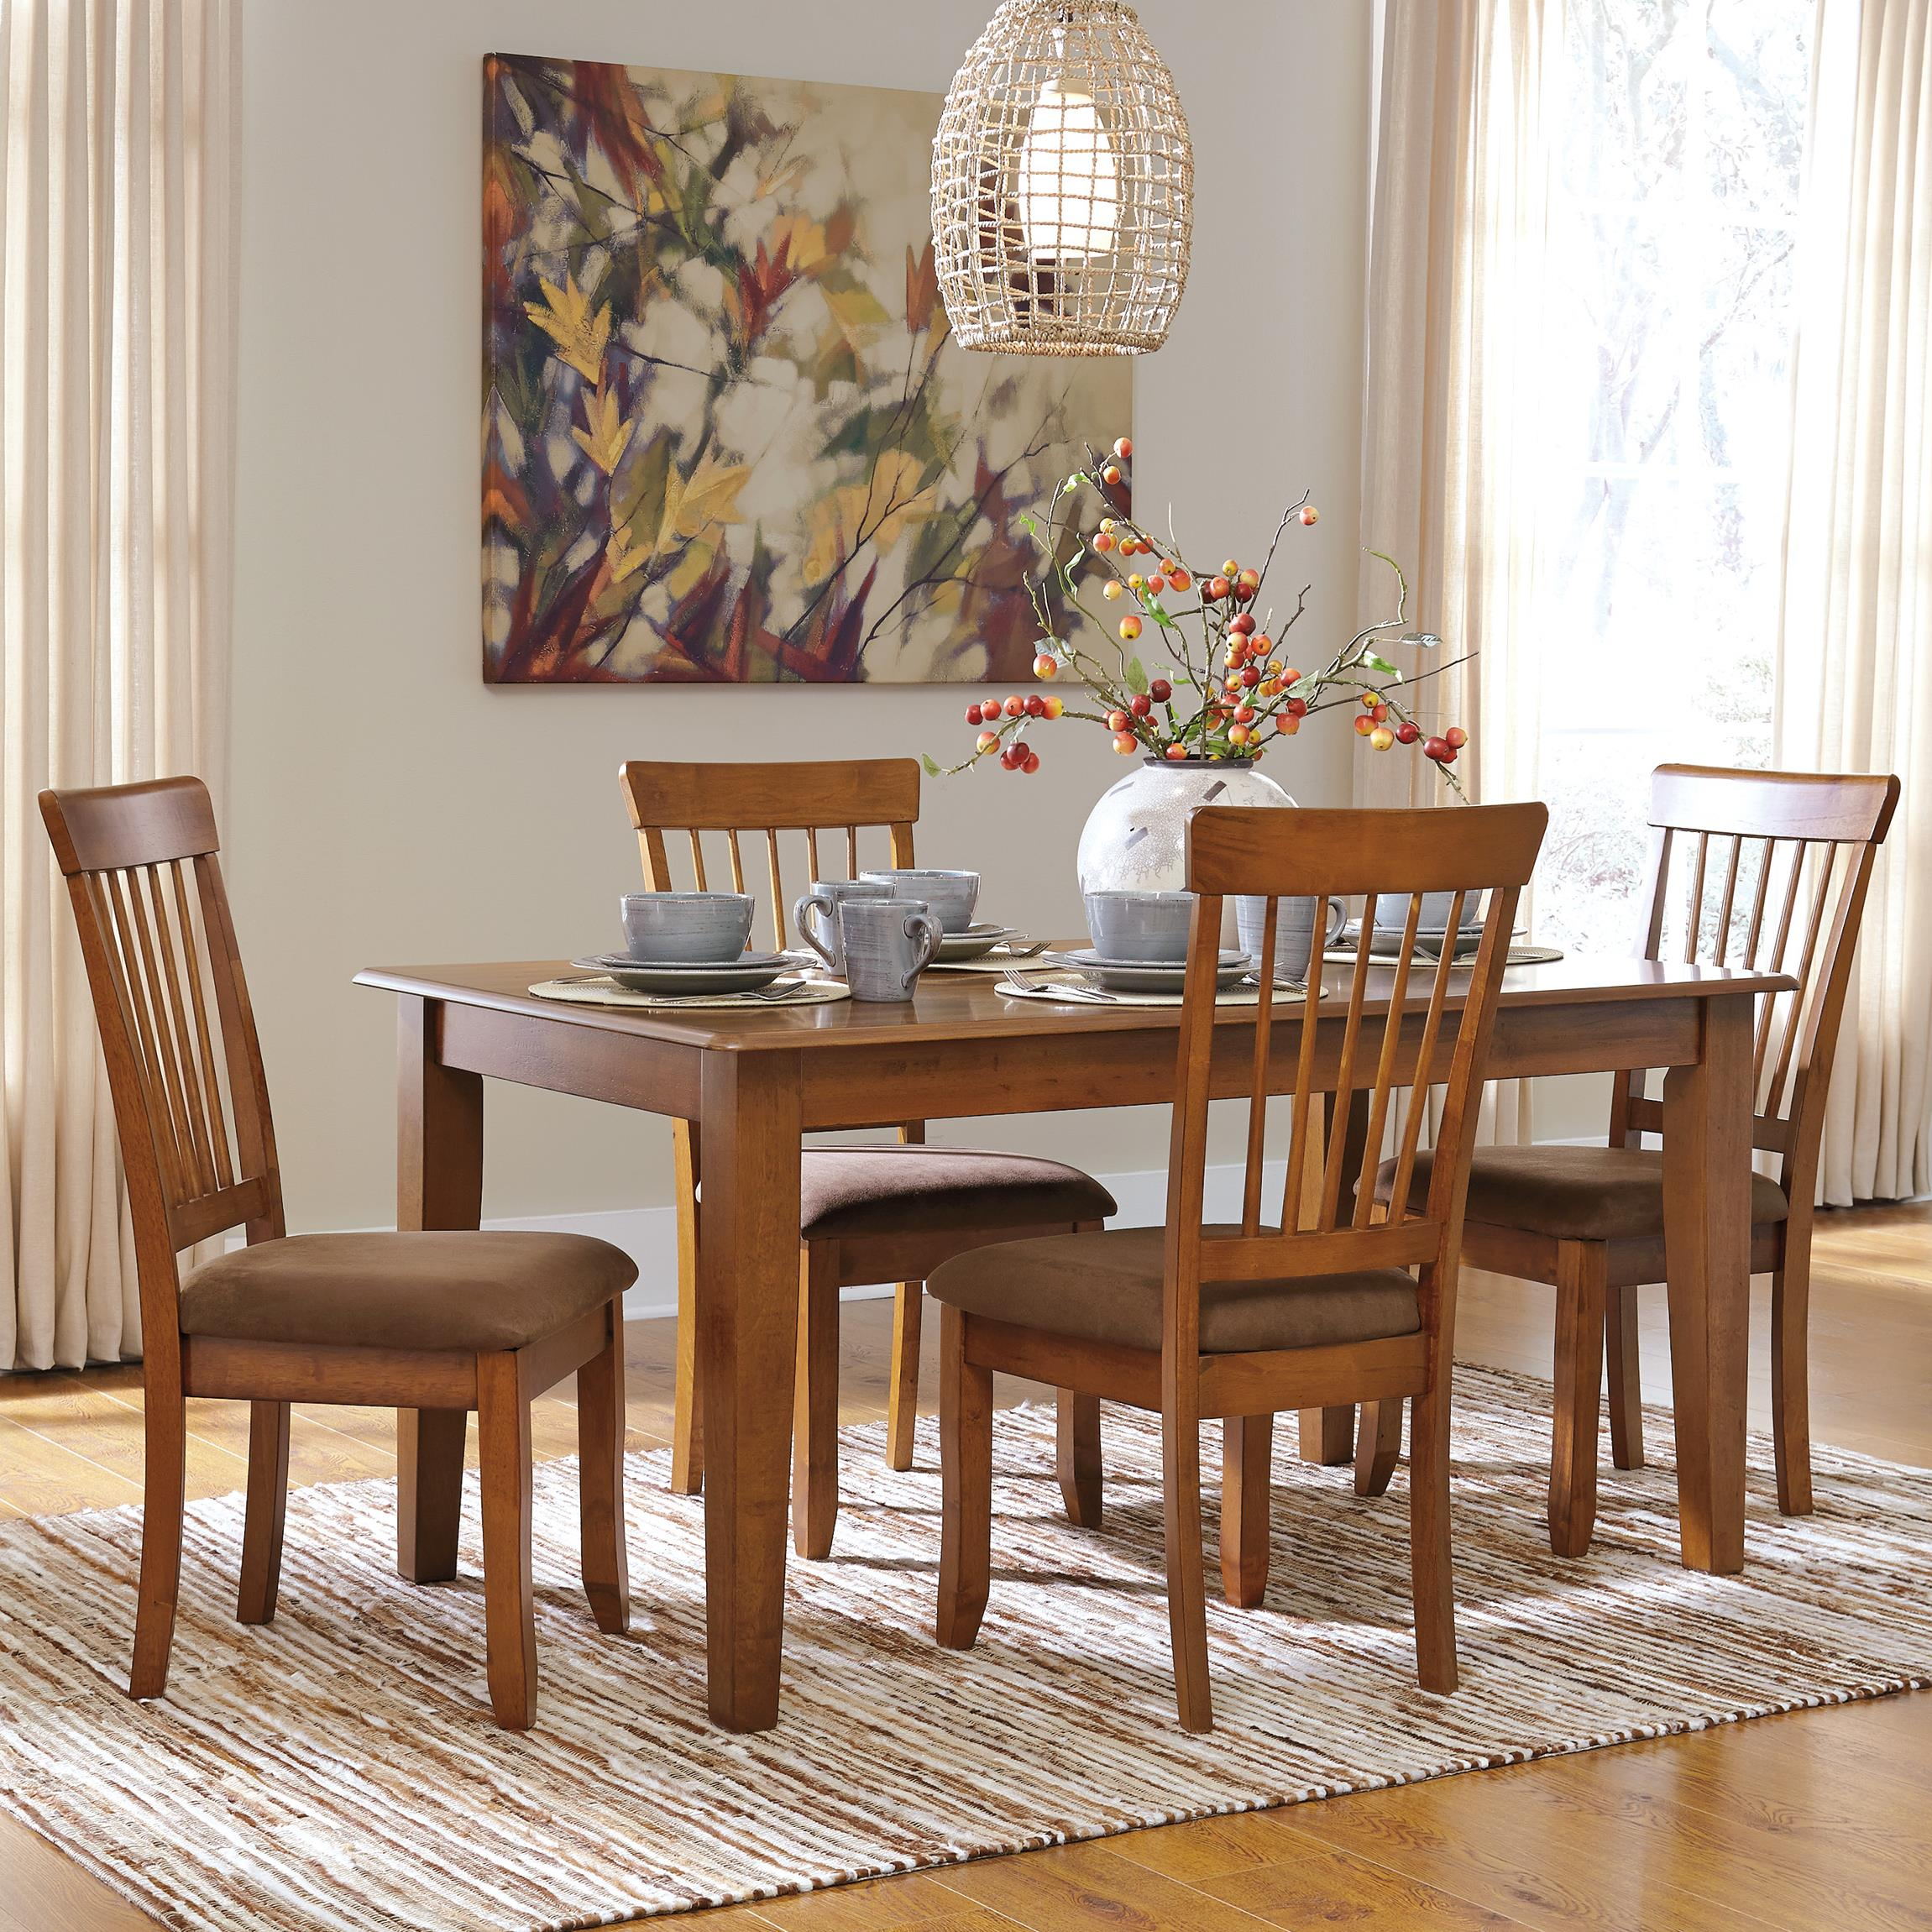 Berringer 5-Piece 36x60 Table & Chair Set by Ashley Furniture at Standard Furniture